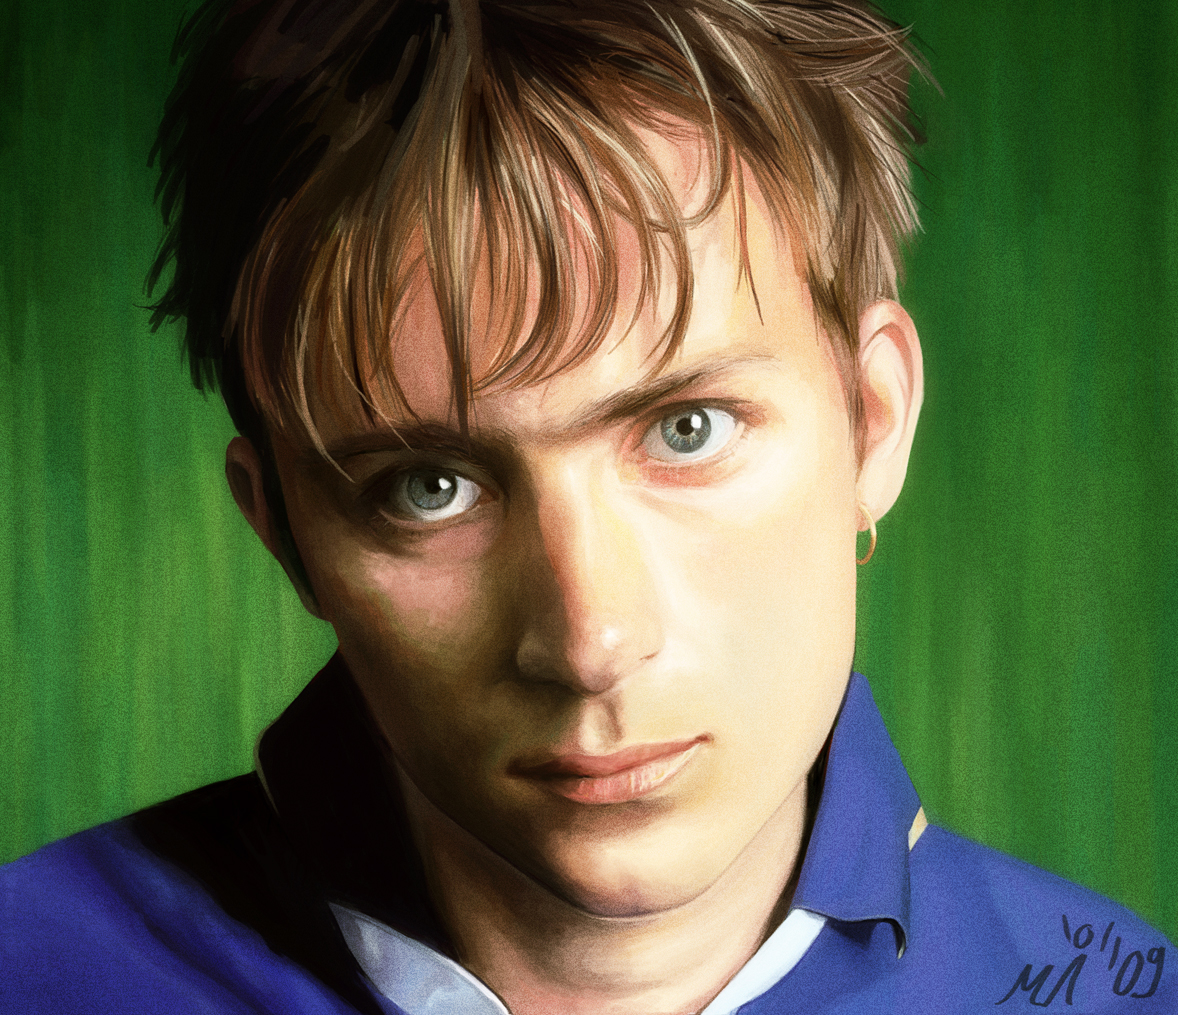 The damon albarn tattoo pictures to pin on pinterest for Damon albarn